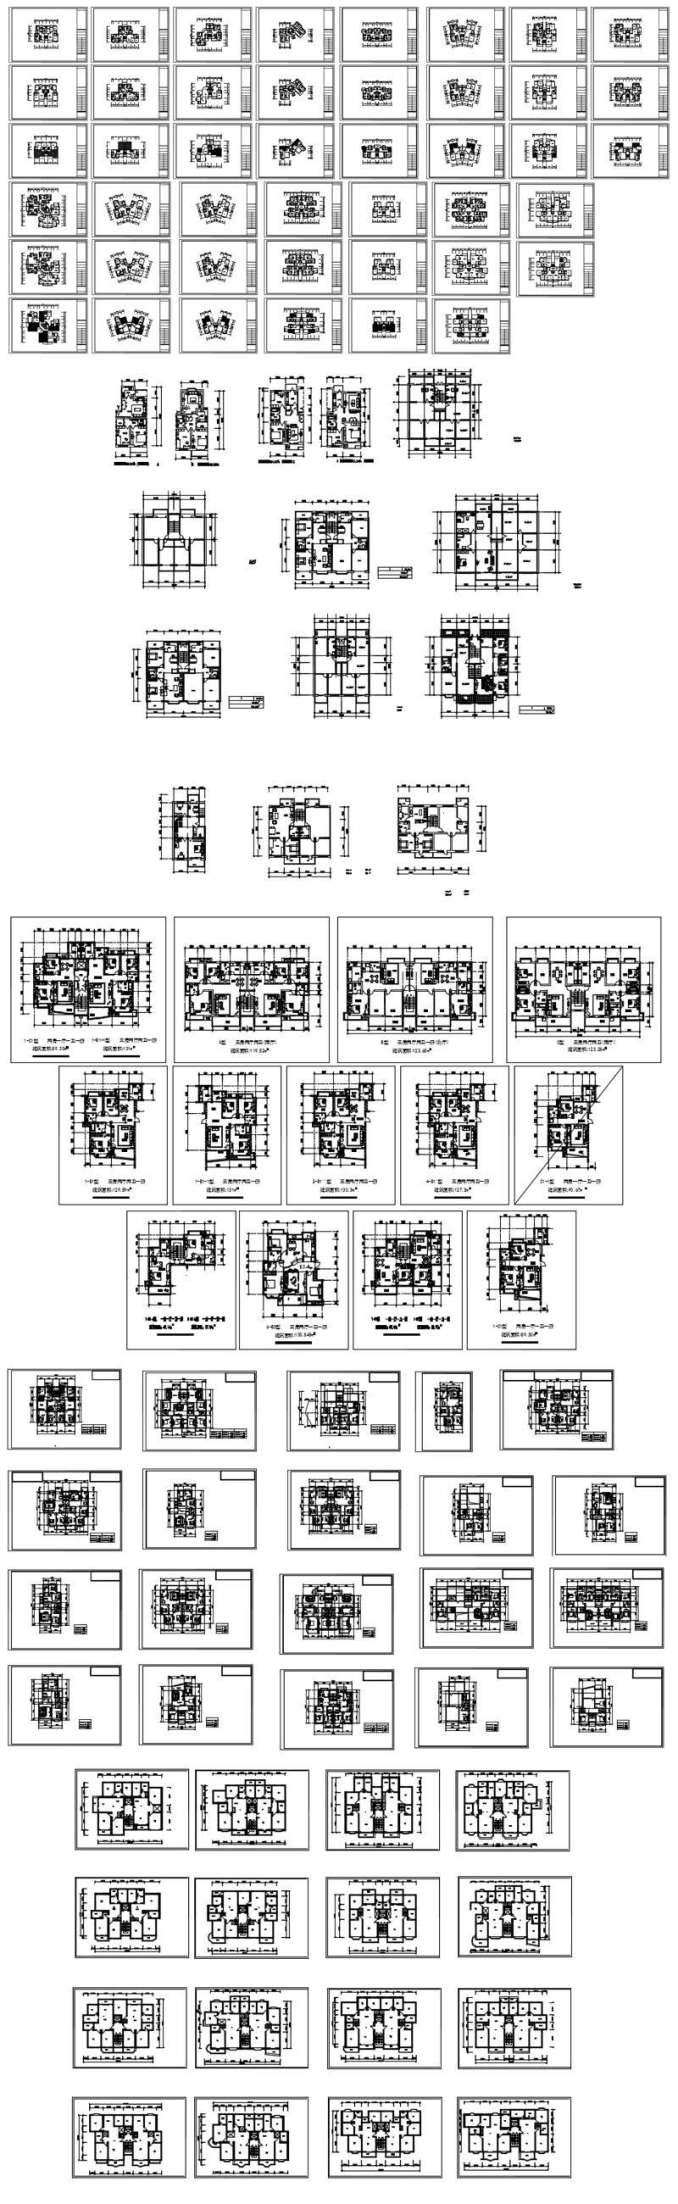 1000 Modern House Autocad Plan Collection | Free Cad Blocks ...